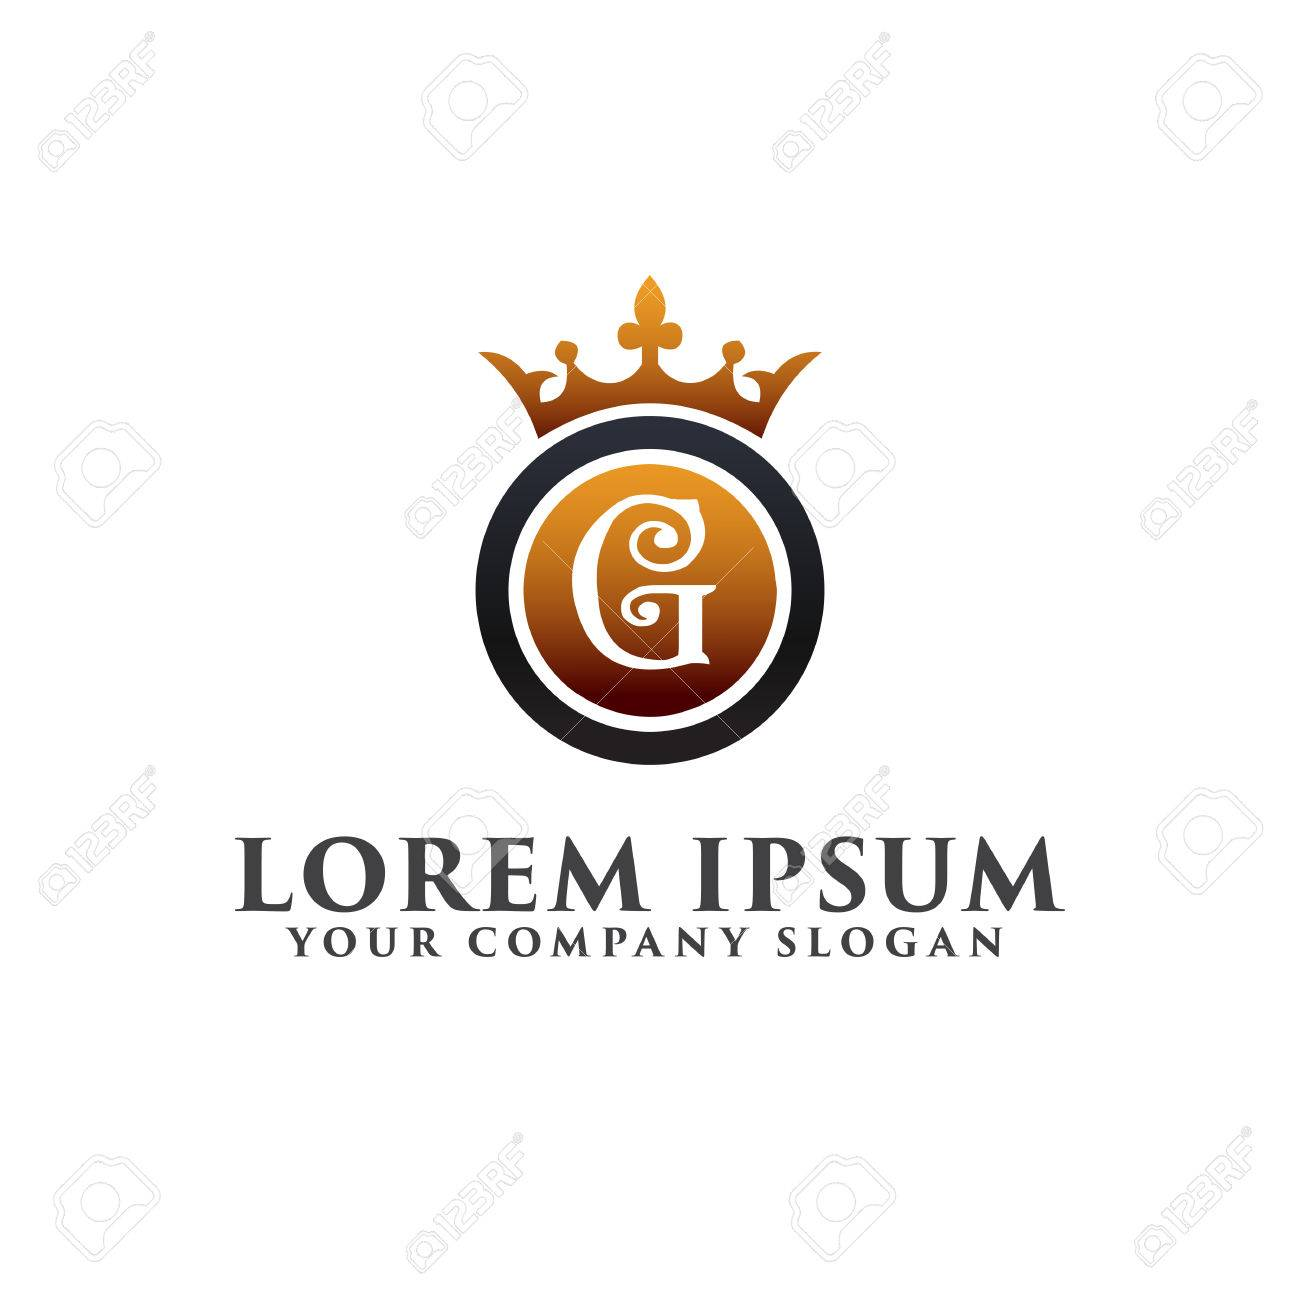 luxury letter g with crown logo design concept template royalty free